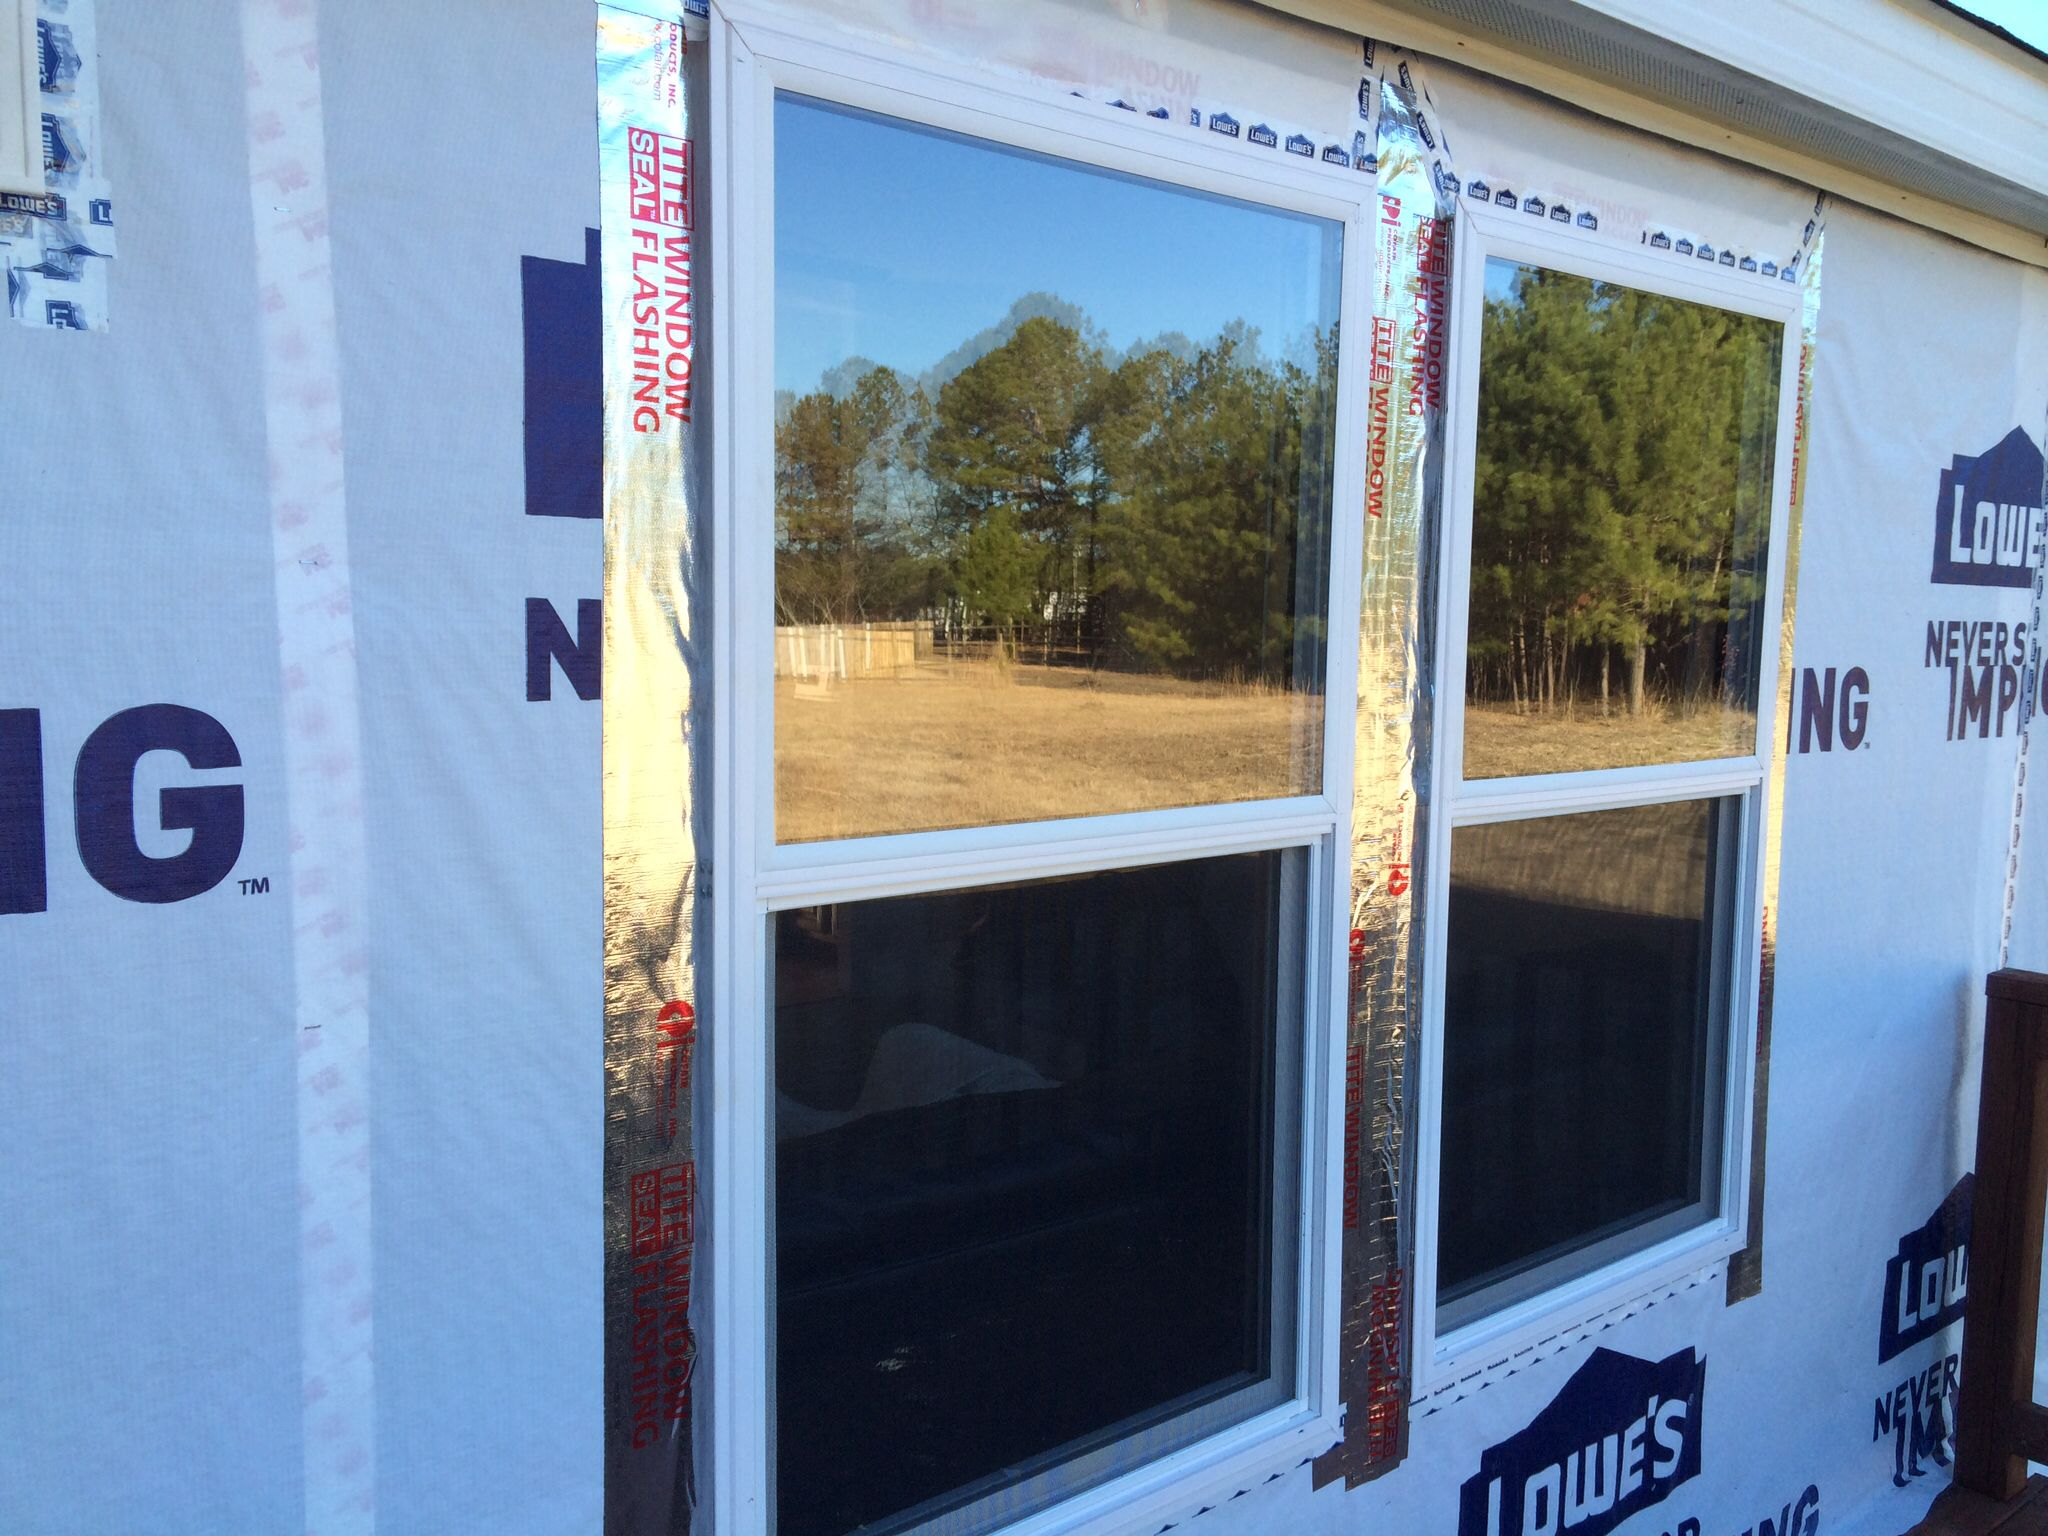 Window replacement on our mobile home